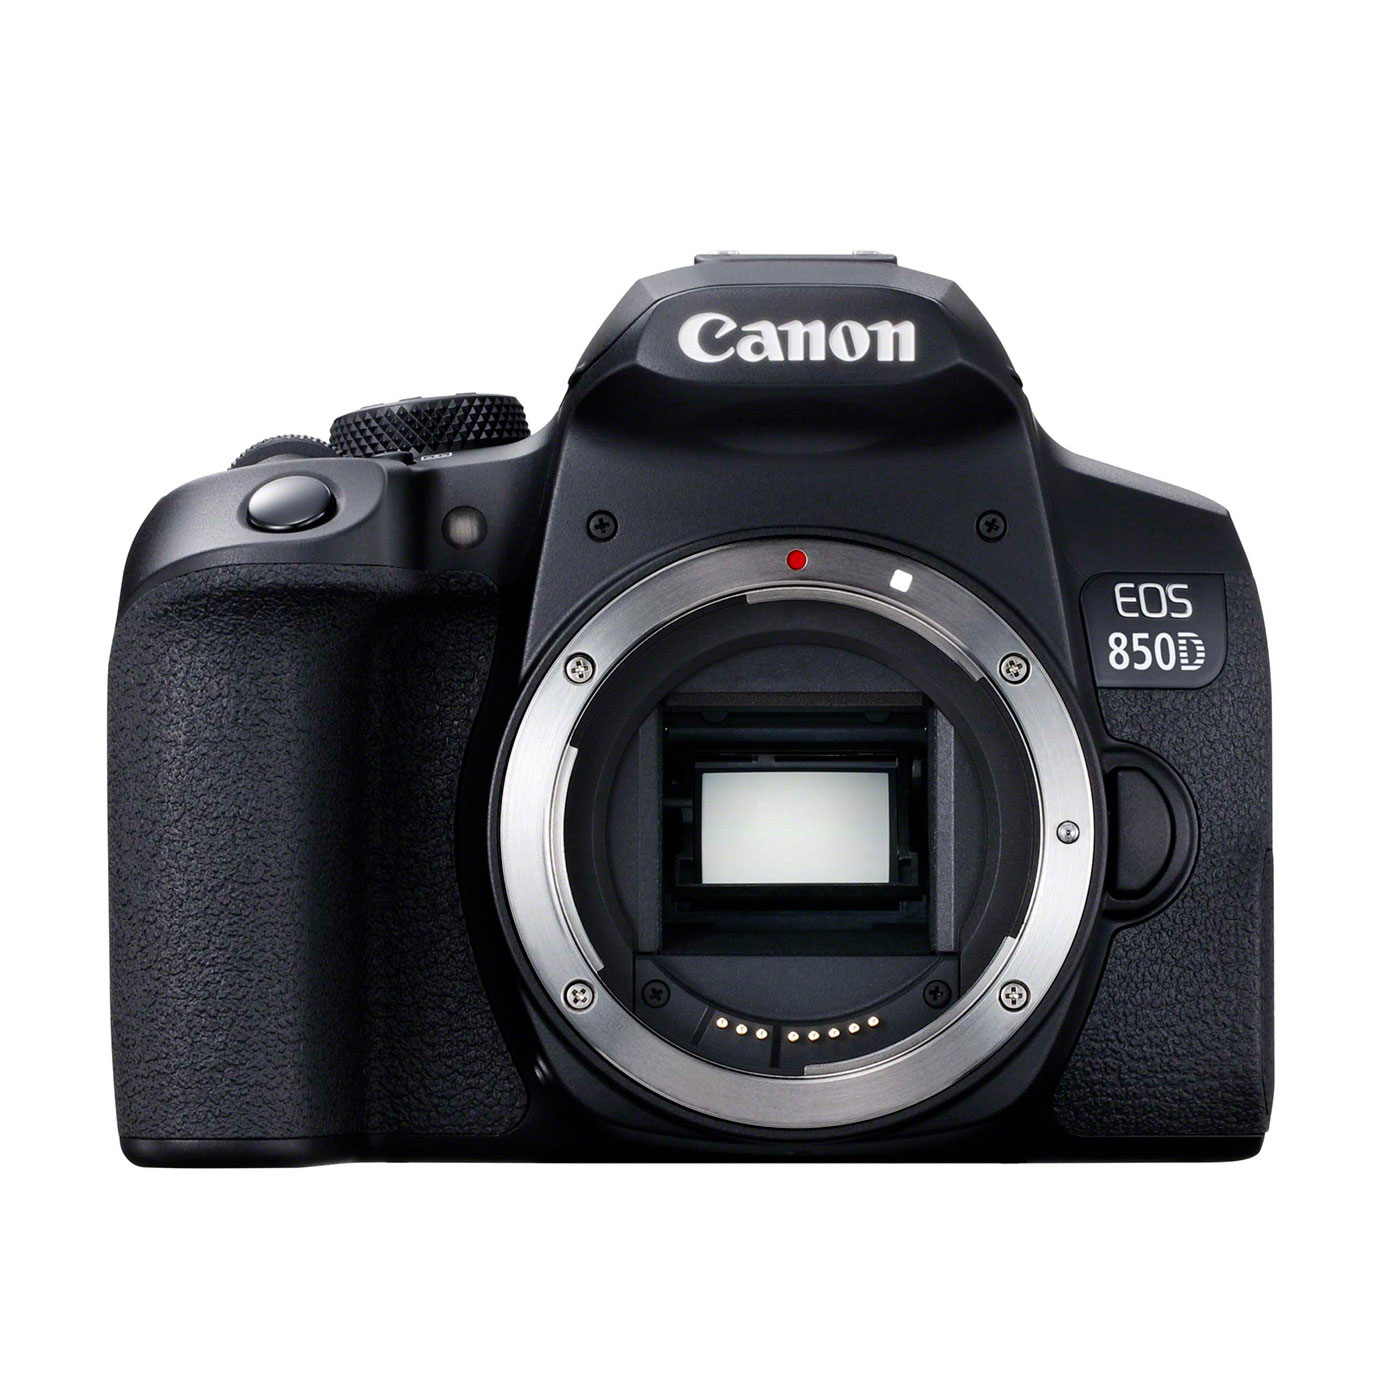 The latest and Greatest Canon 850D DSLR